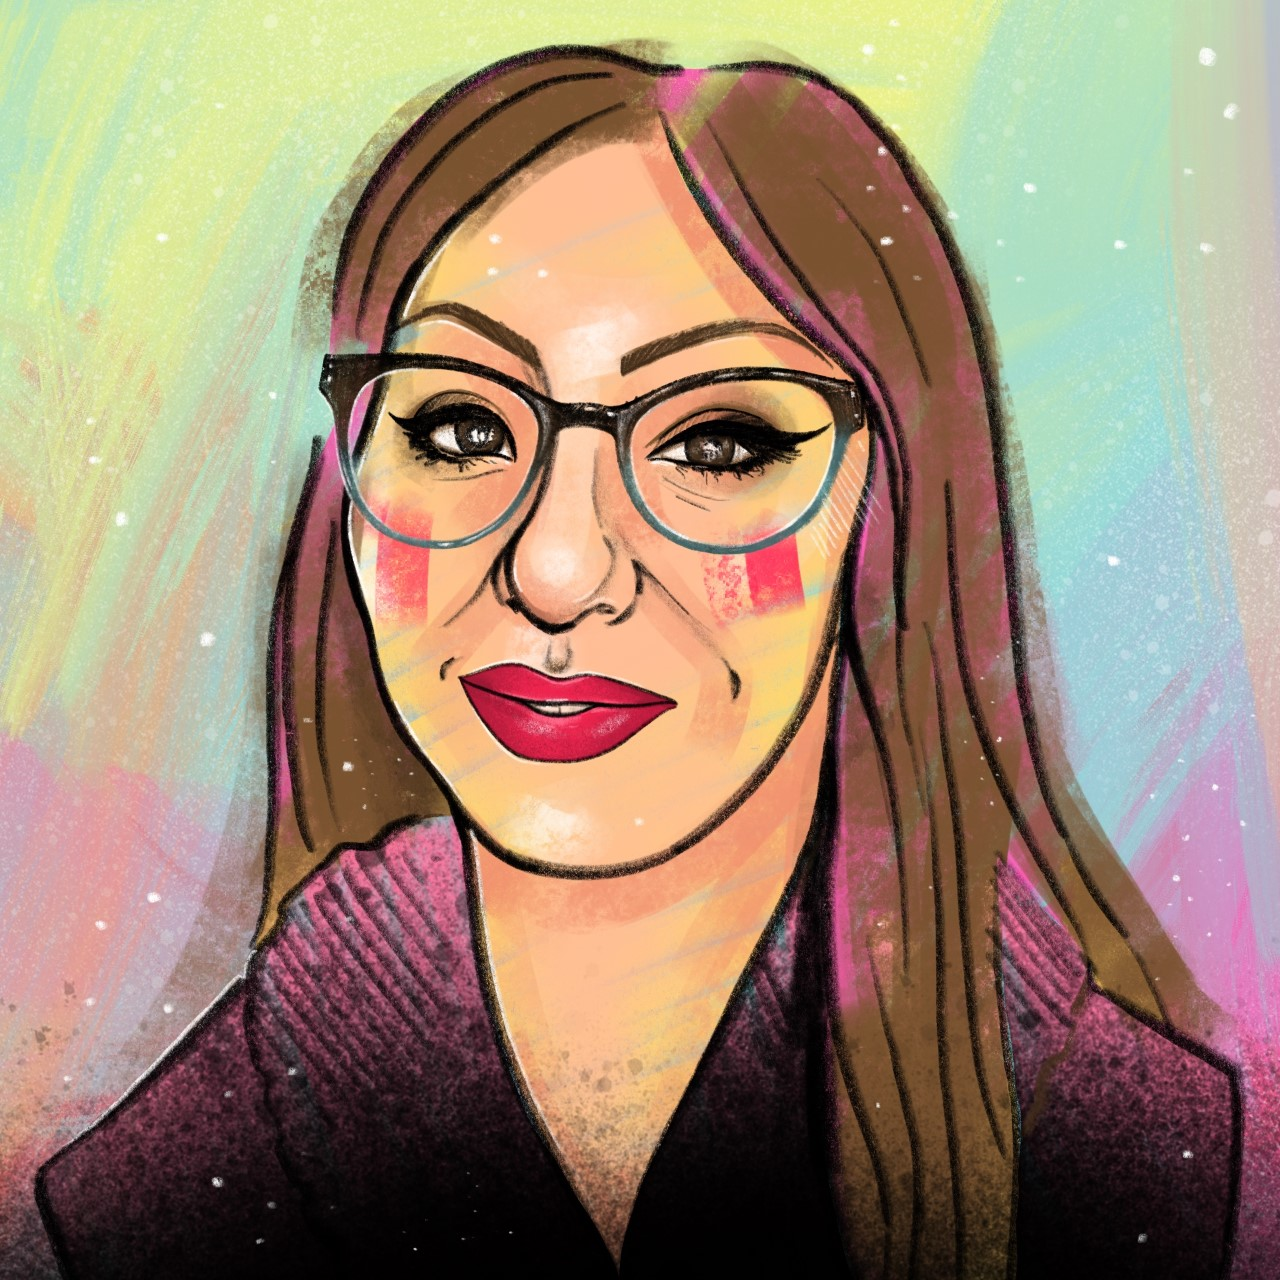 a portrait of a woman wearing glasses, in brightly coloured paints.